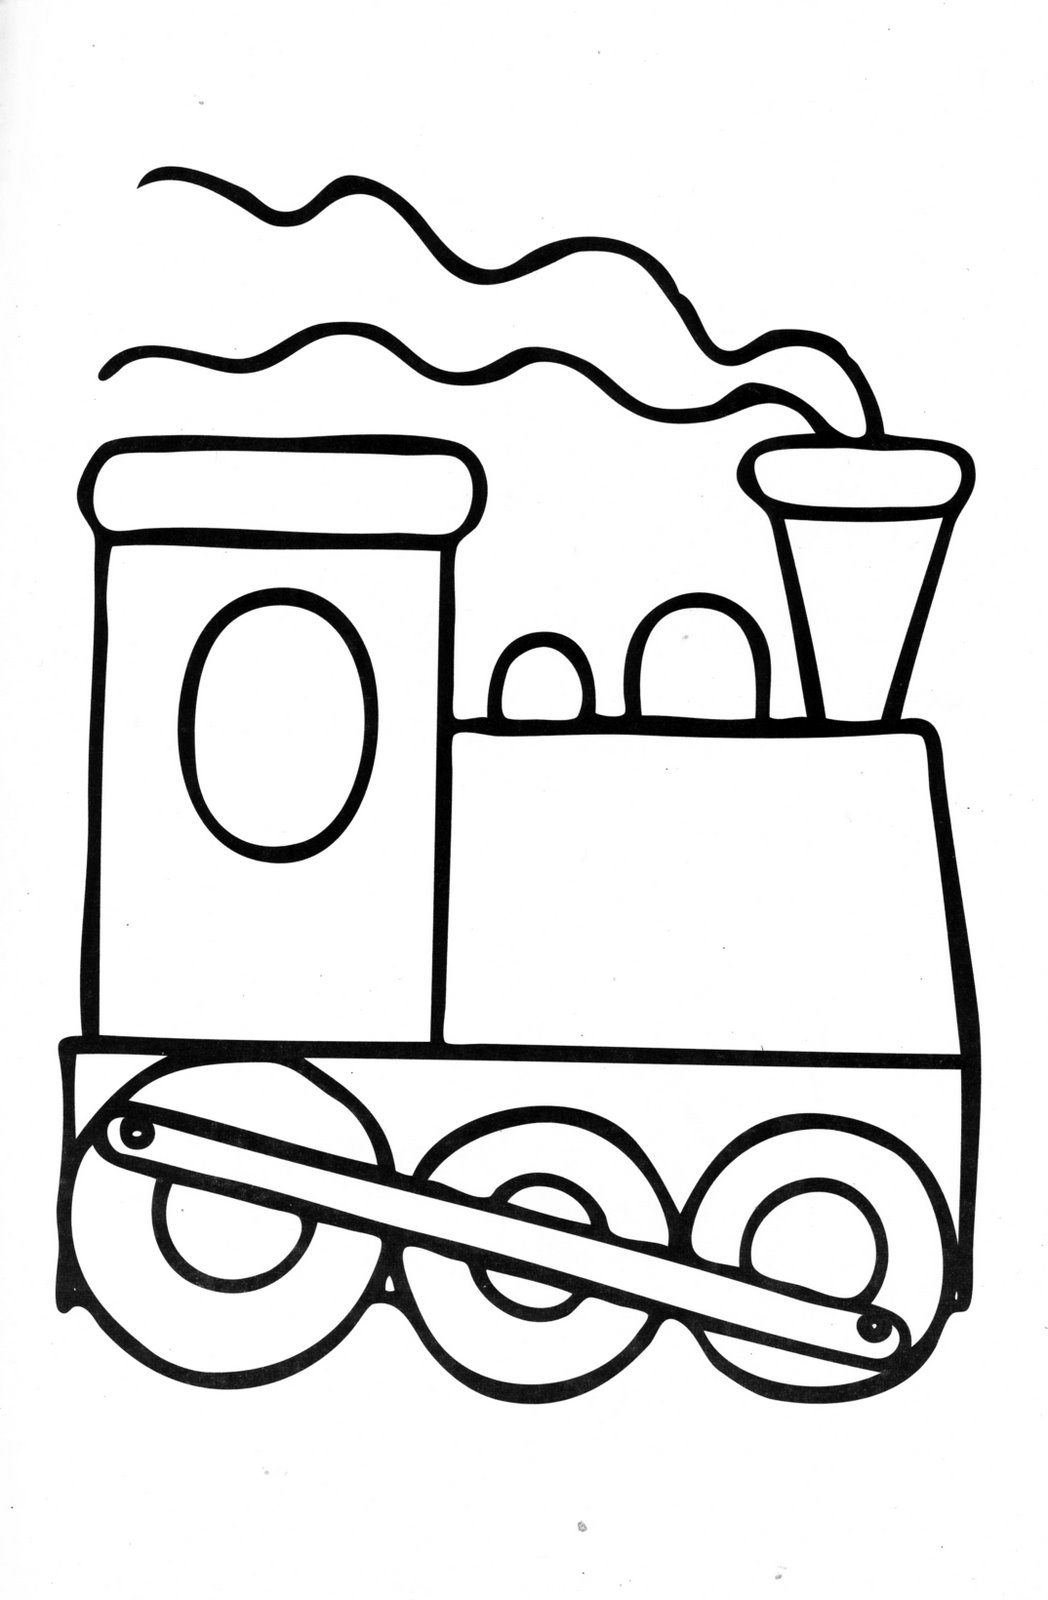 coloring clipart for kids free train images for kids download free clip art free coloring kids clipart for